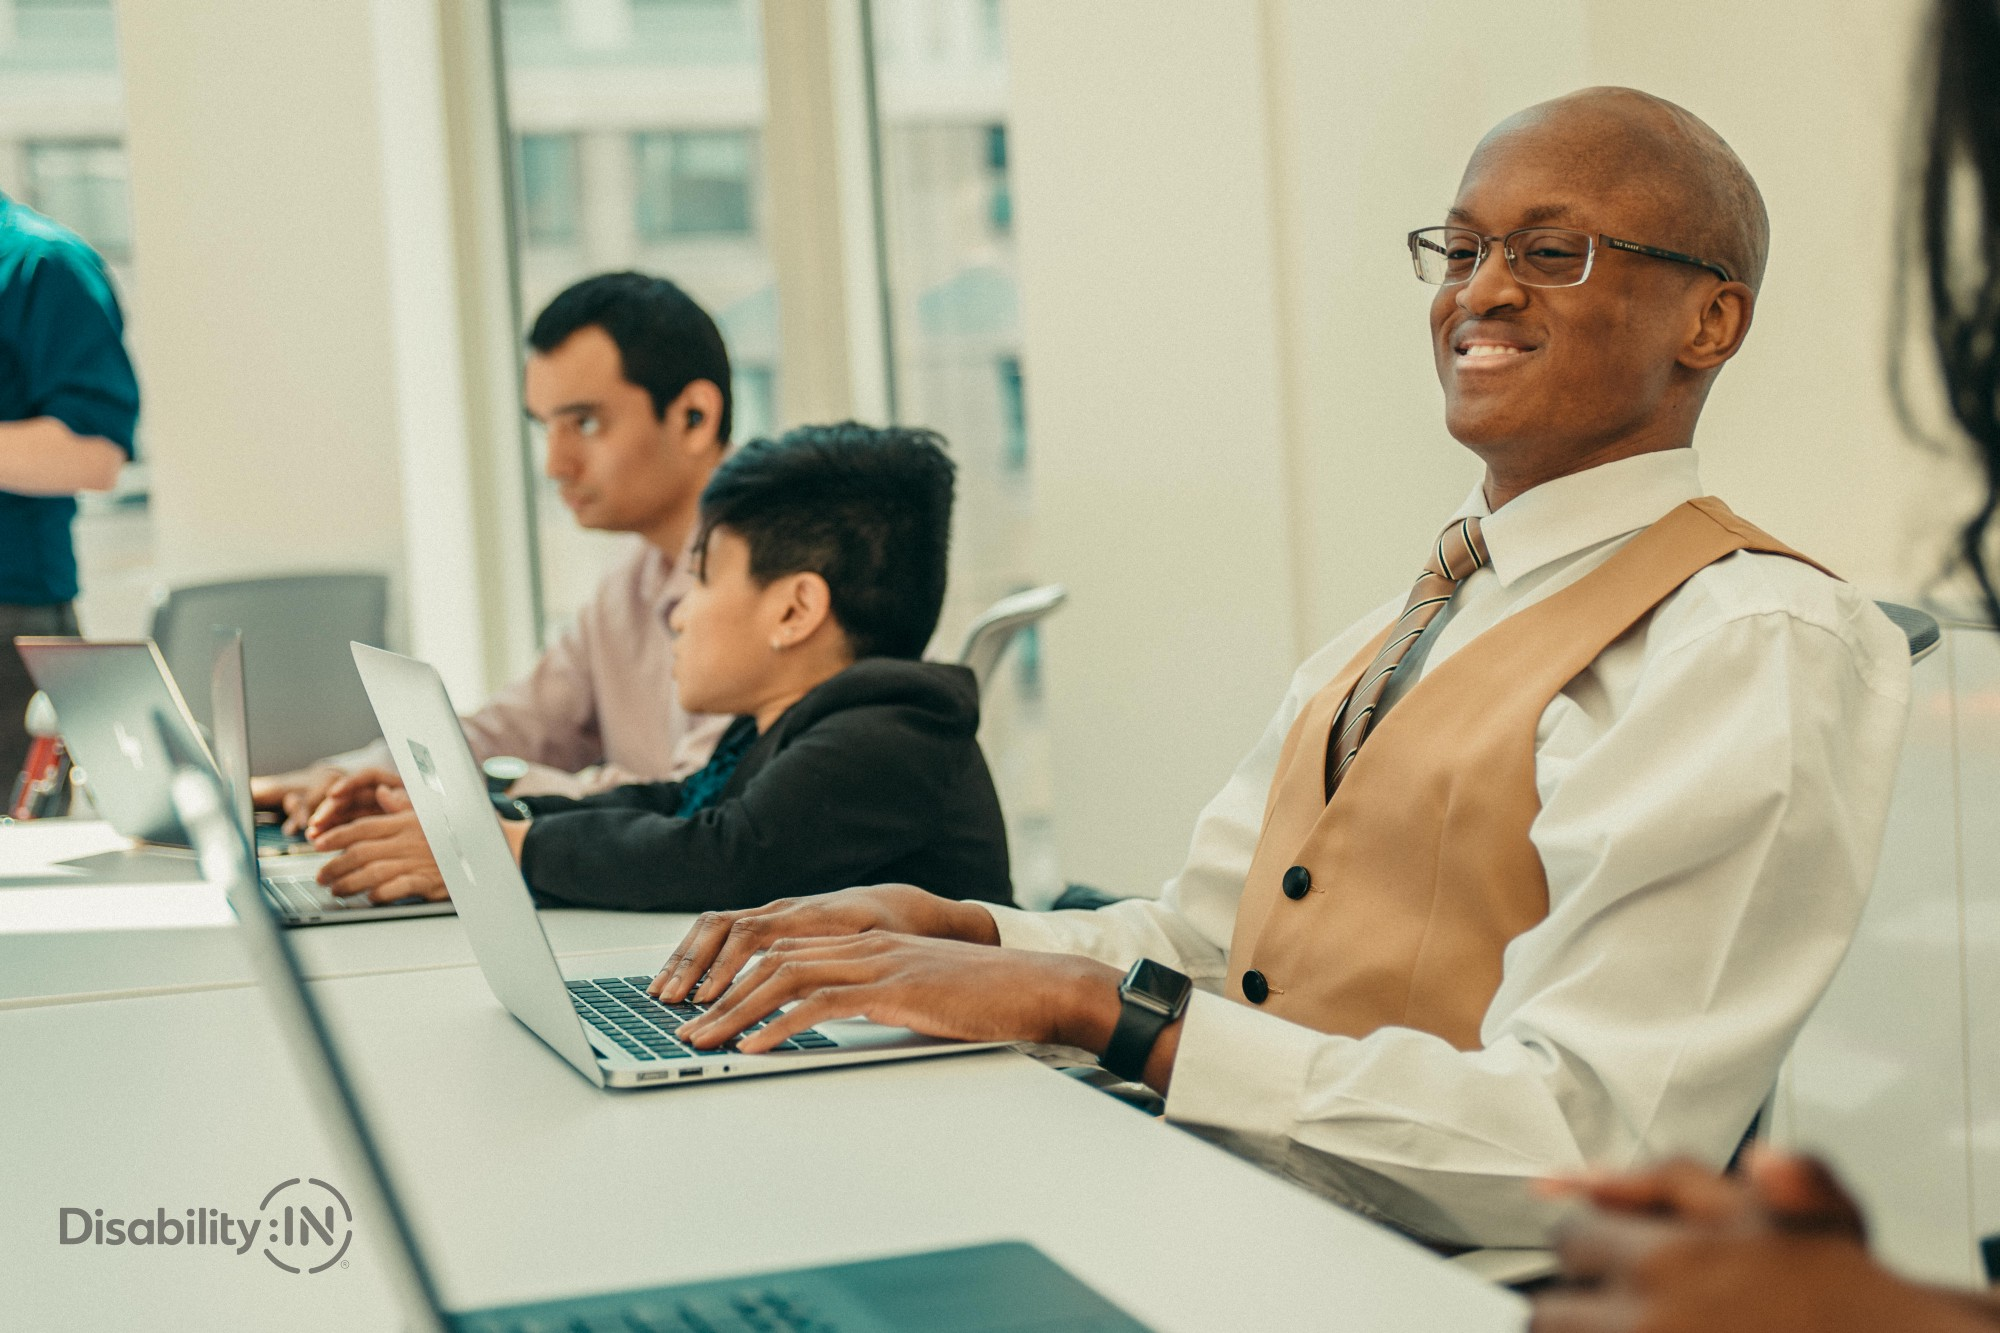 Smiling man with a learning disability works on a laptop in a meeting with other colleagues.